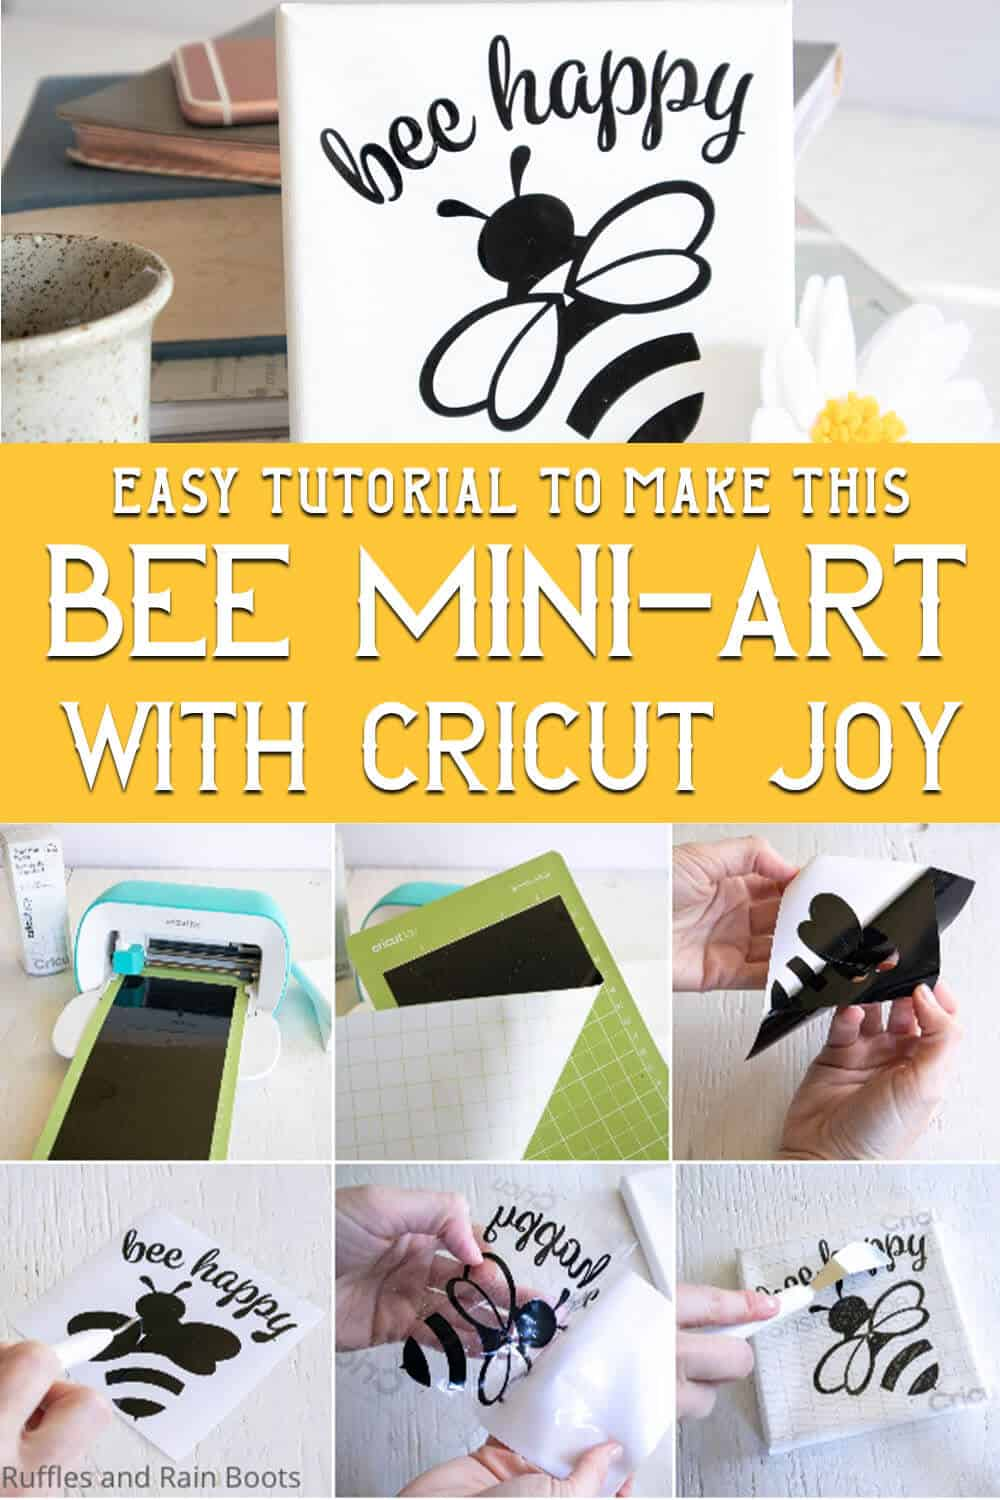 photo collage of easy cricut joy project with free bee svg with text which reads easy tutorial to make this bee mini-art with cricut joy